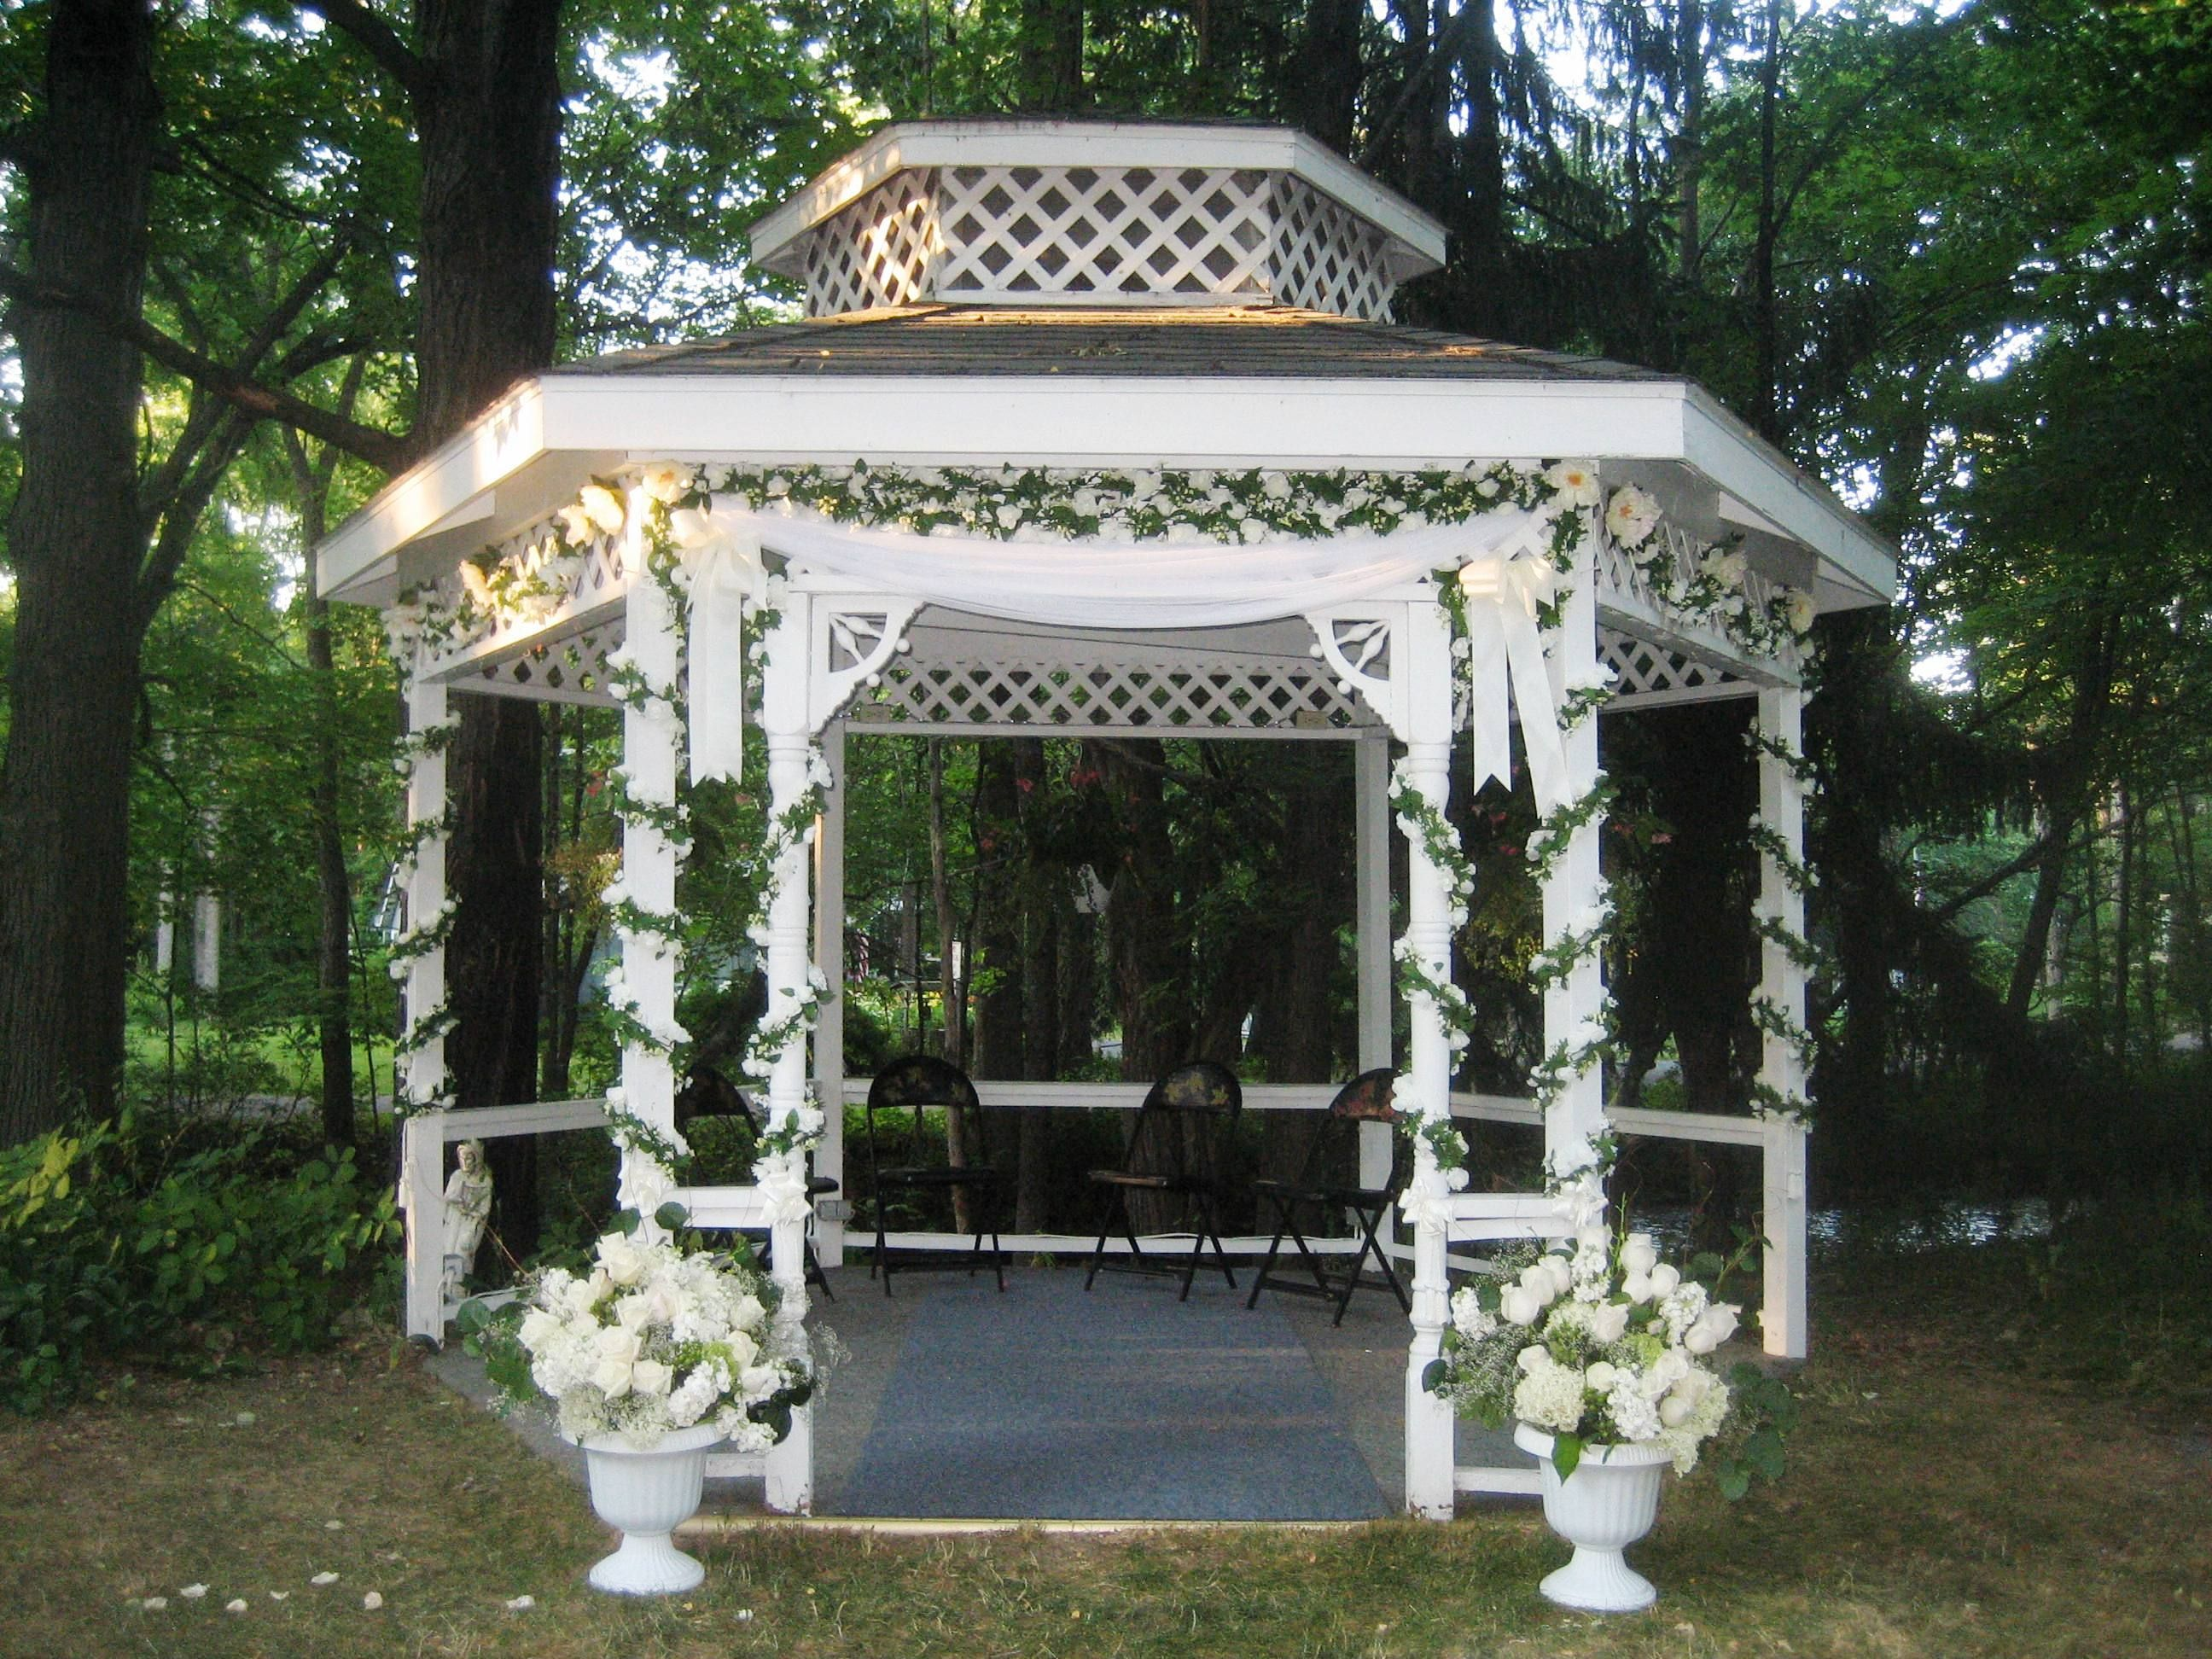 There was a flute quartet seated in the gazebo and wedding for Outdoor wedding gazebo decorating ideas